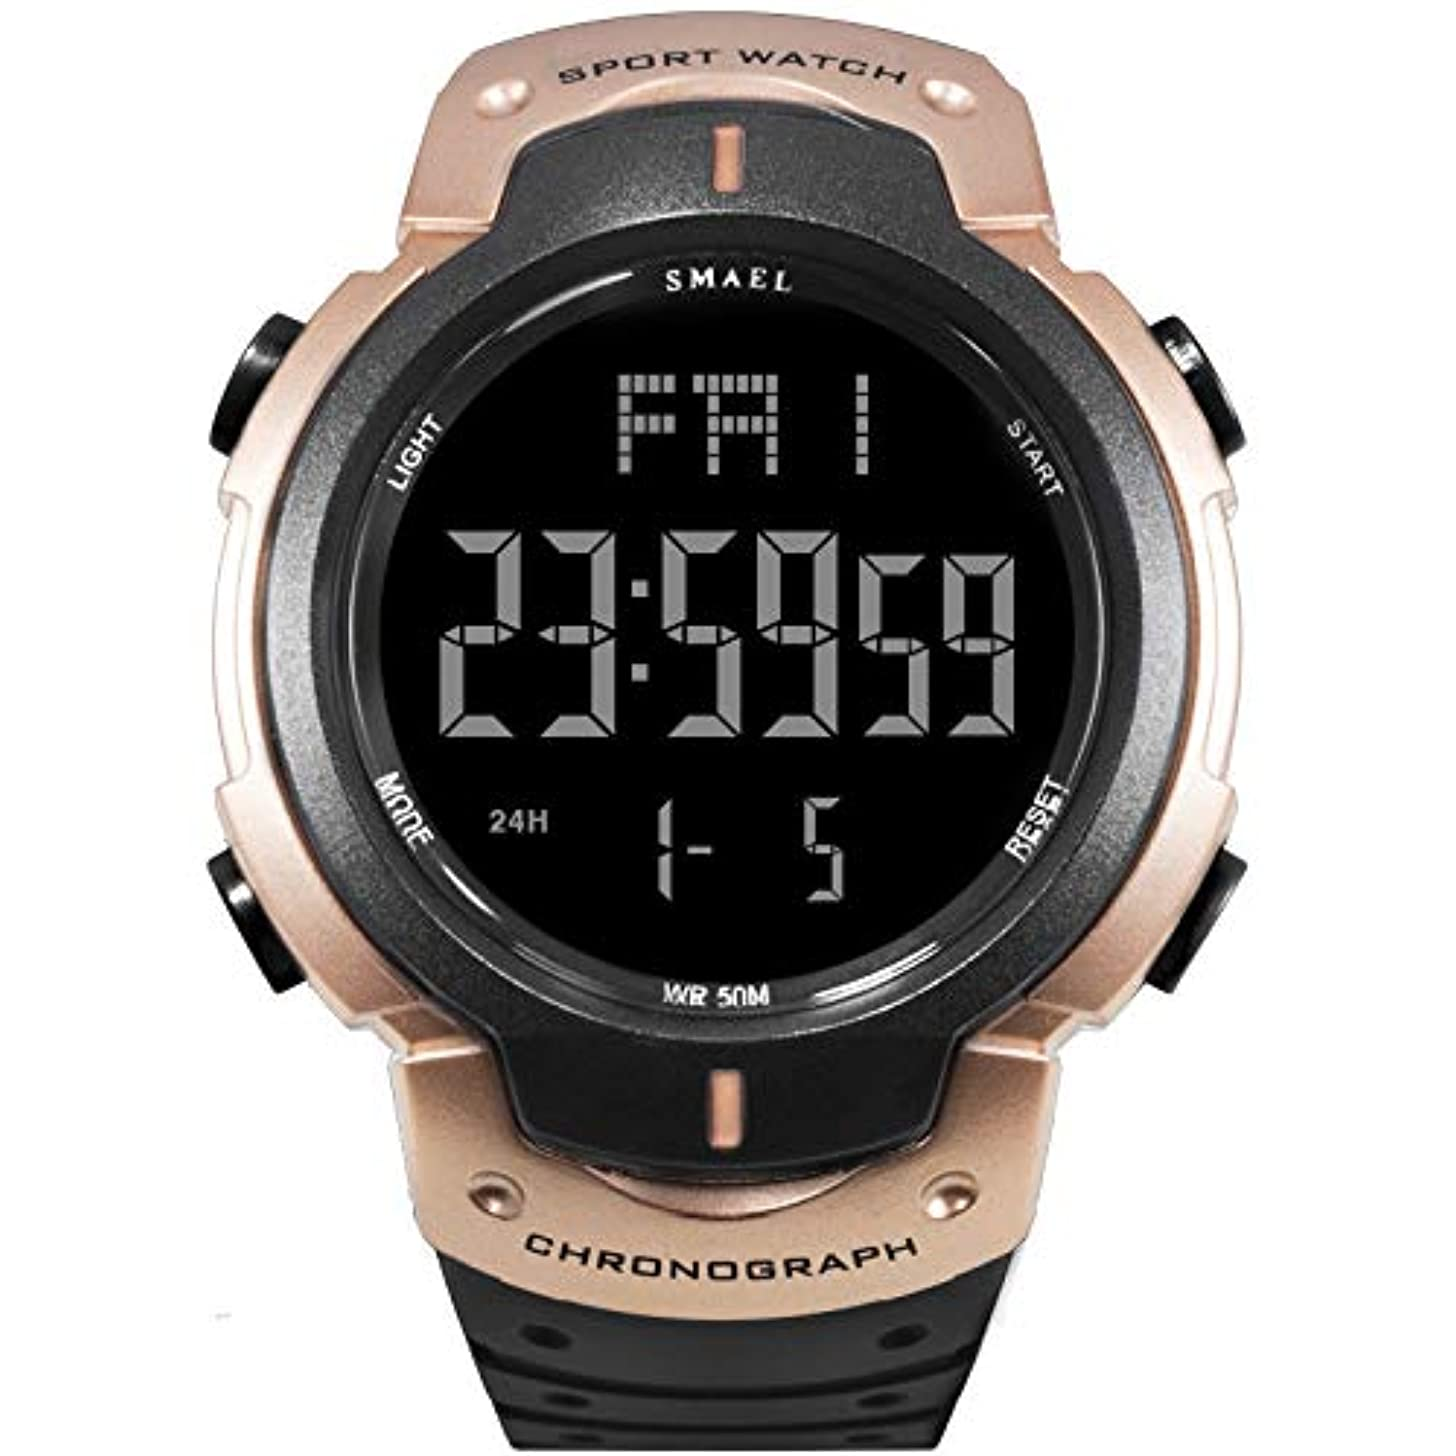 Clearance! Hot Sale! ?Casual Men's Simple Digital Dial Calmly Strap Waterproof Sports Outdoor Watch for Father Men Student Youth Teens Boyfriend Lover's Birthday Anniversary Gift Under 10 Dollars